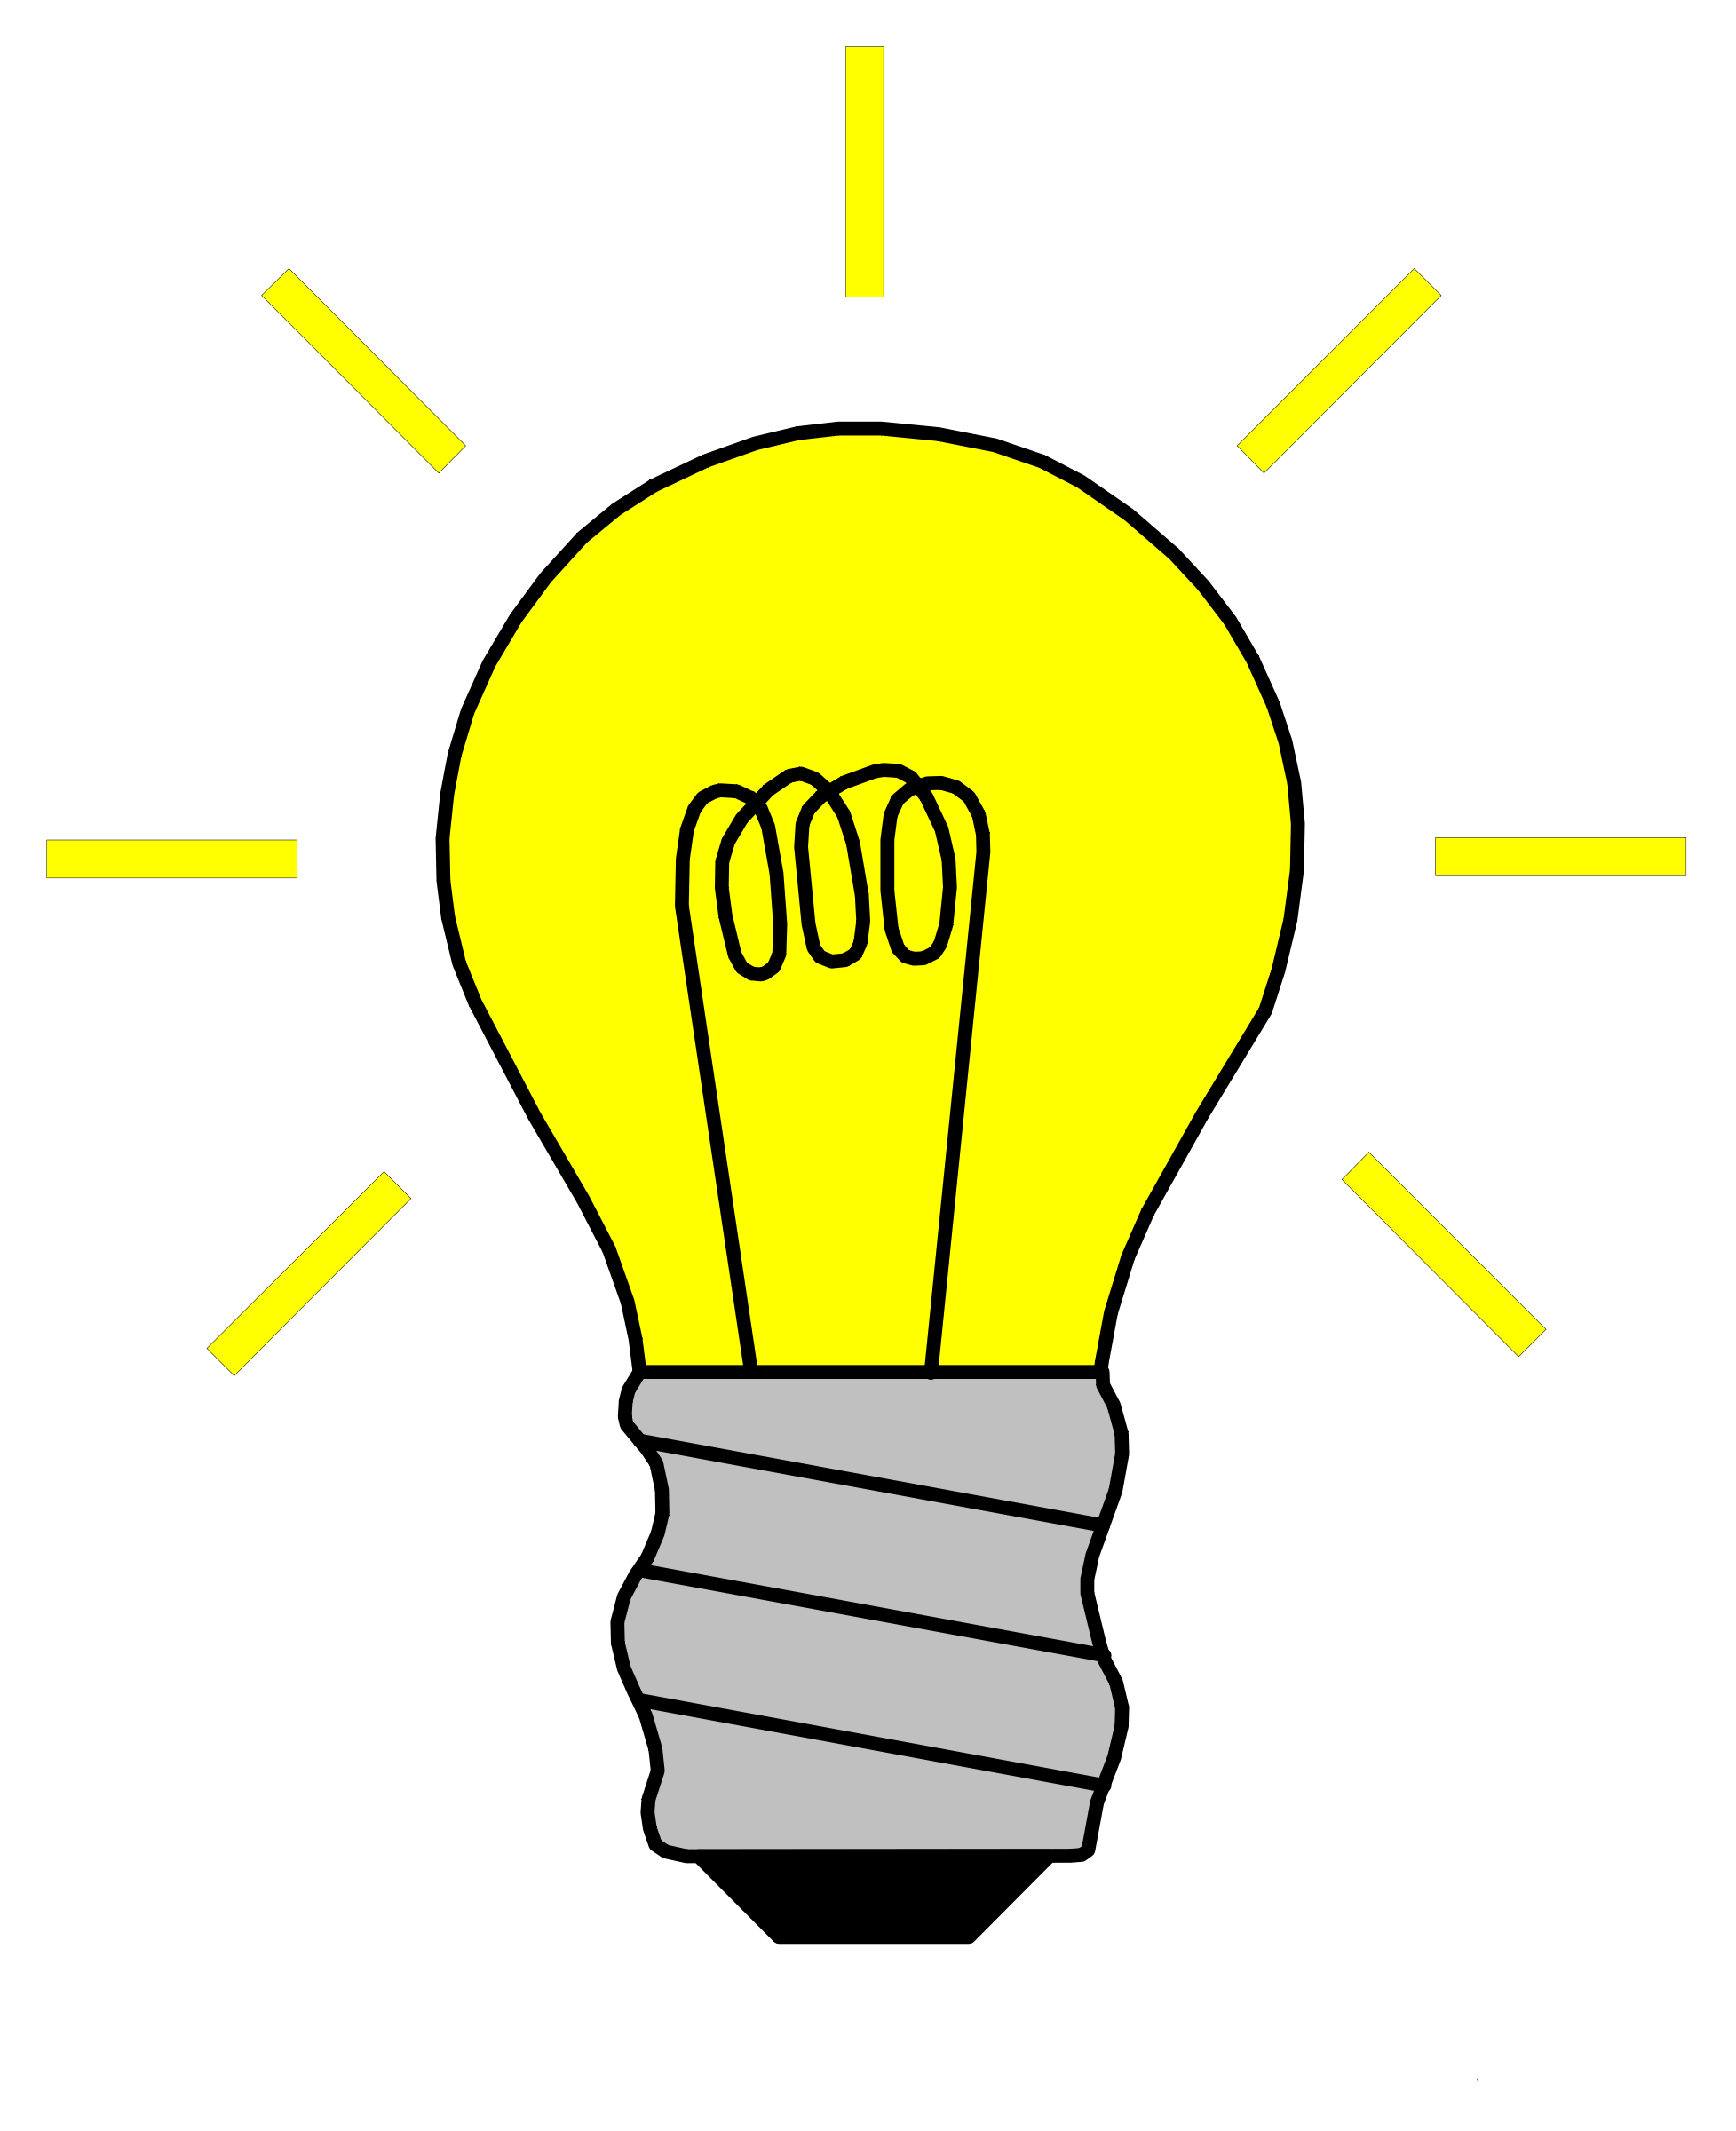 Free Light Bulbs Clipart, Download Free Clip Art, Free Clip.